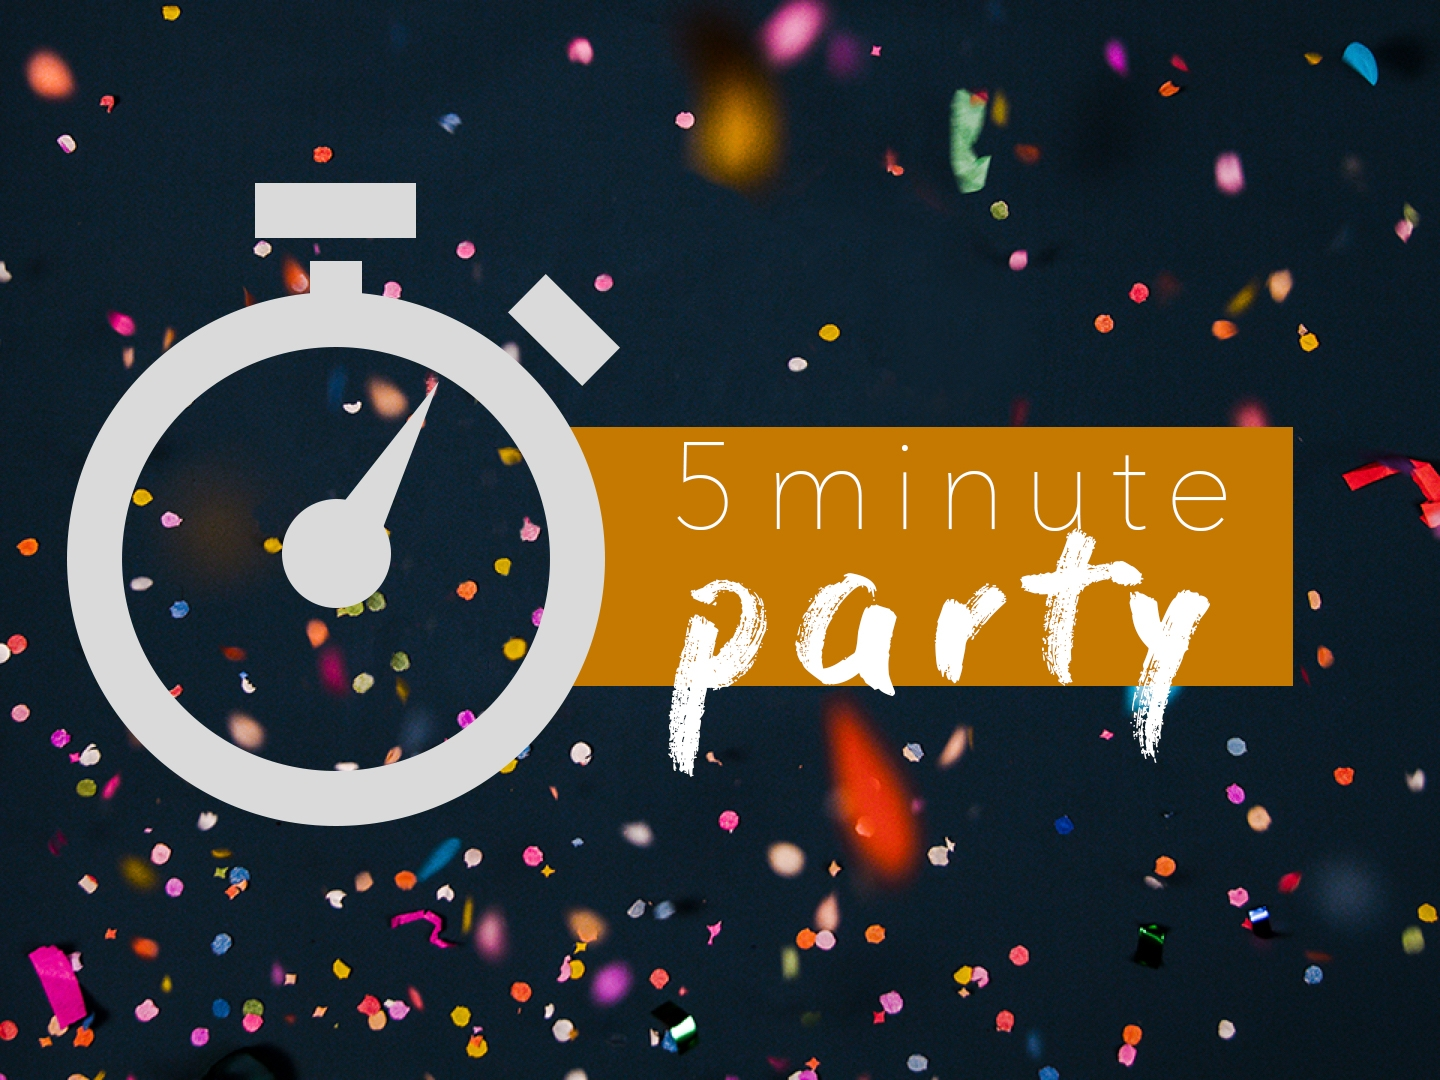 5 Minute Party - Announcement.jpg